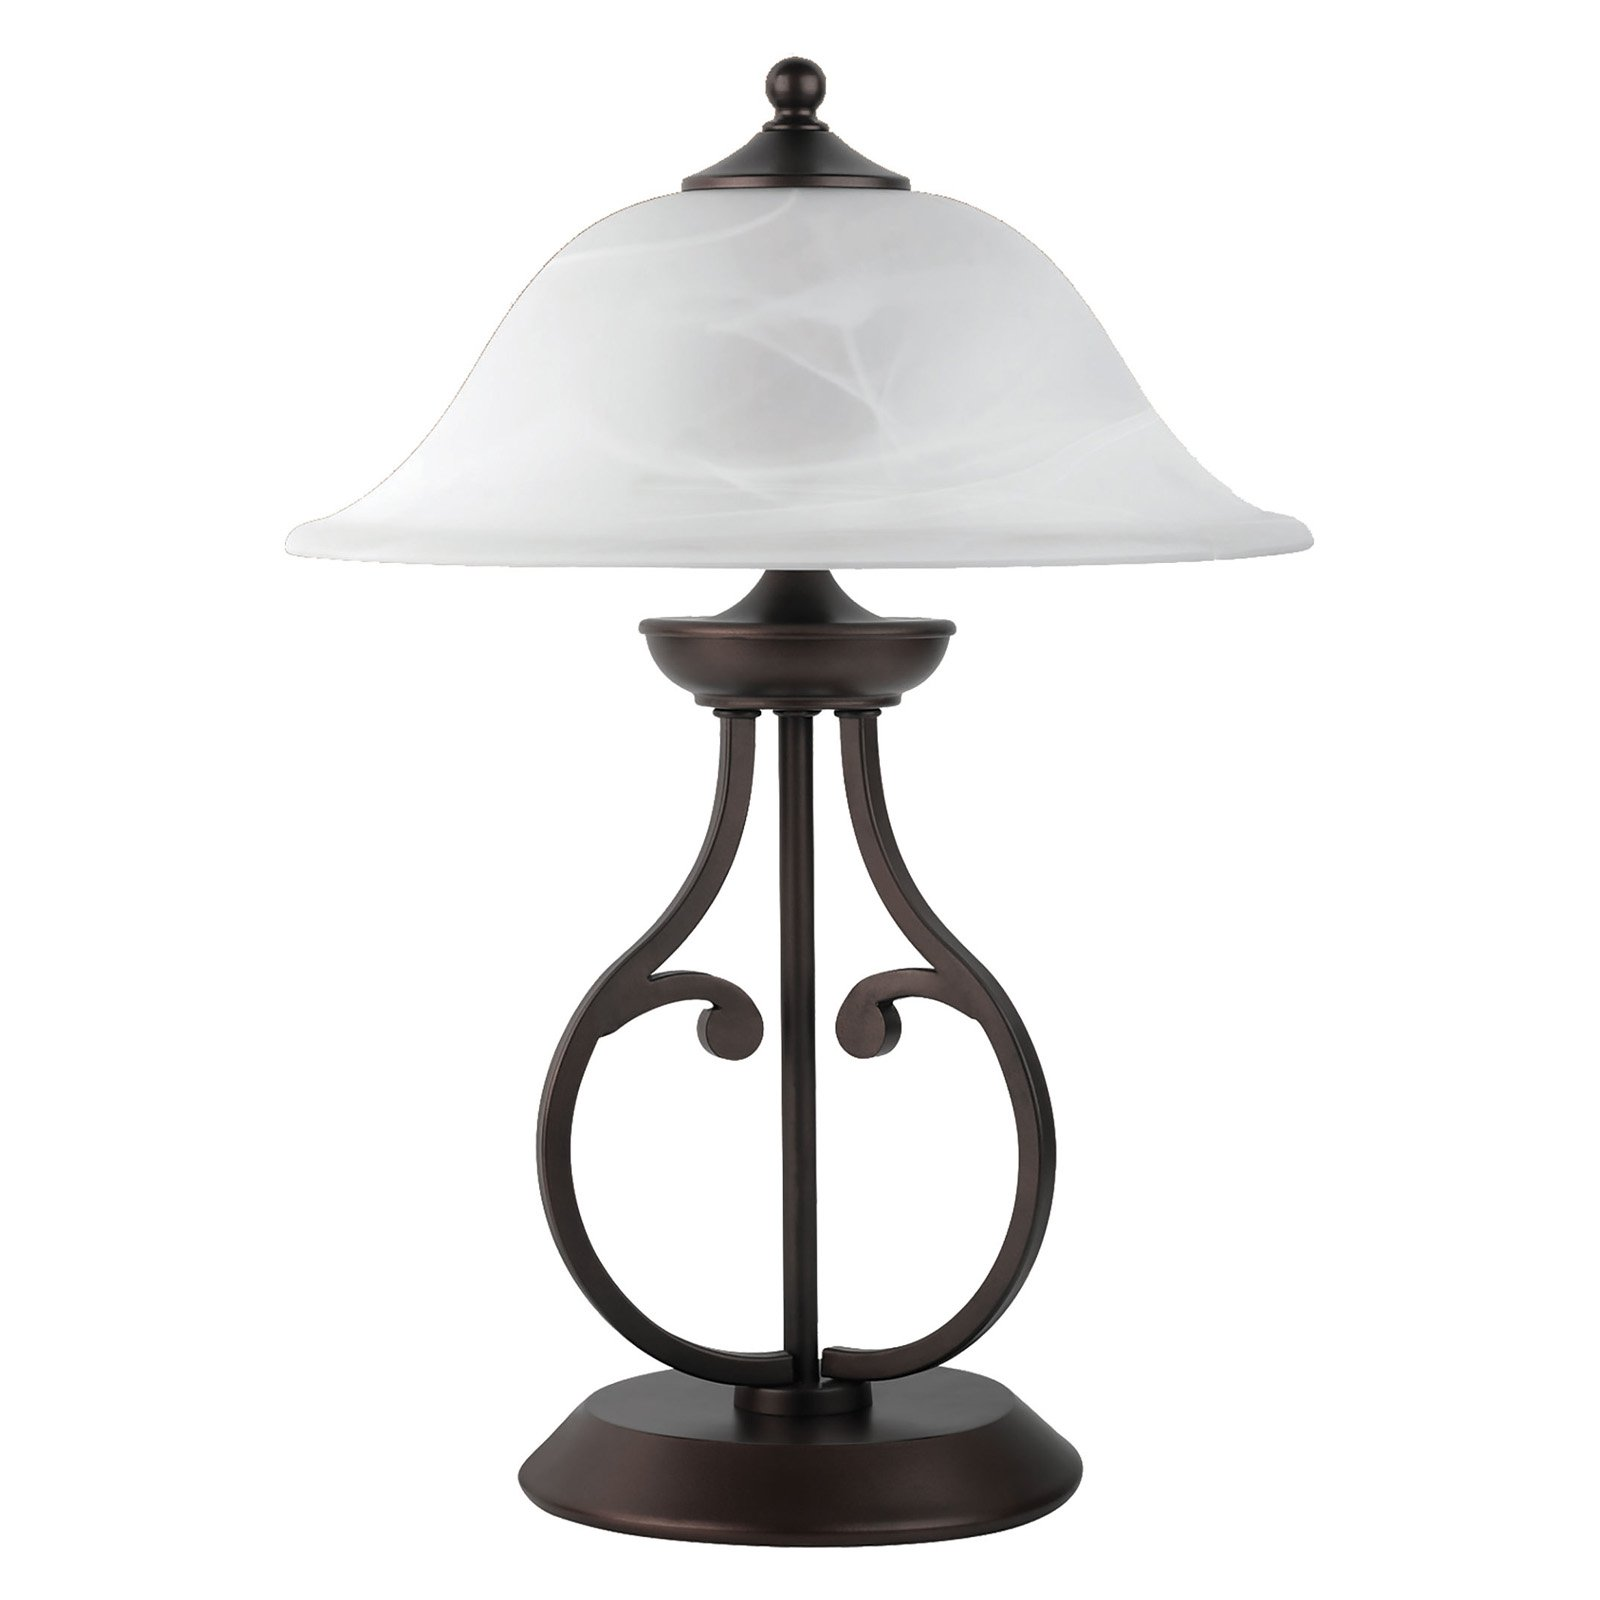 Coaster Company Of America 901207 Table Lamp In 2019